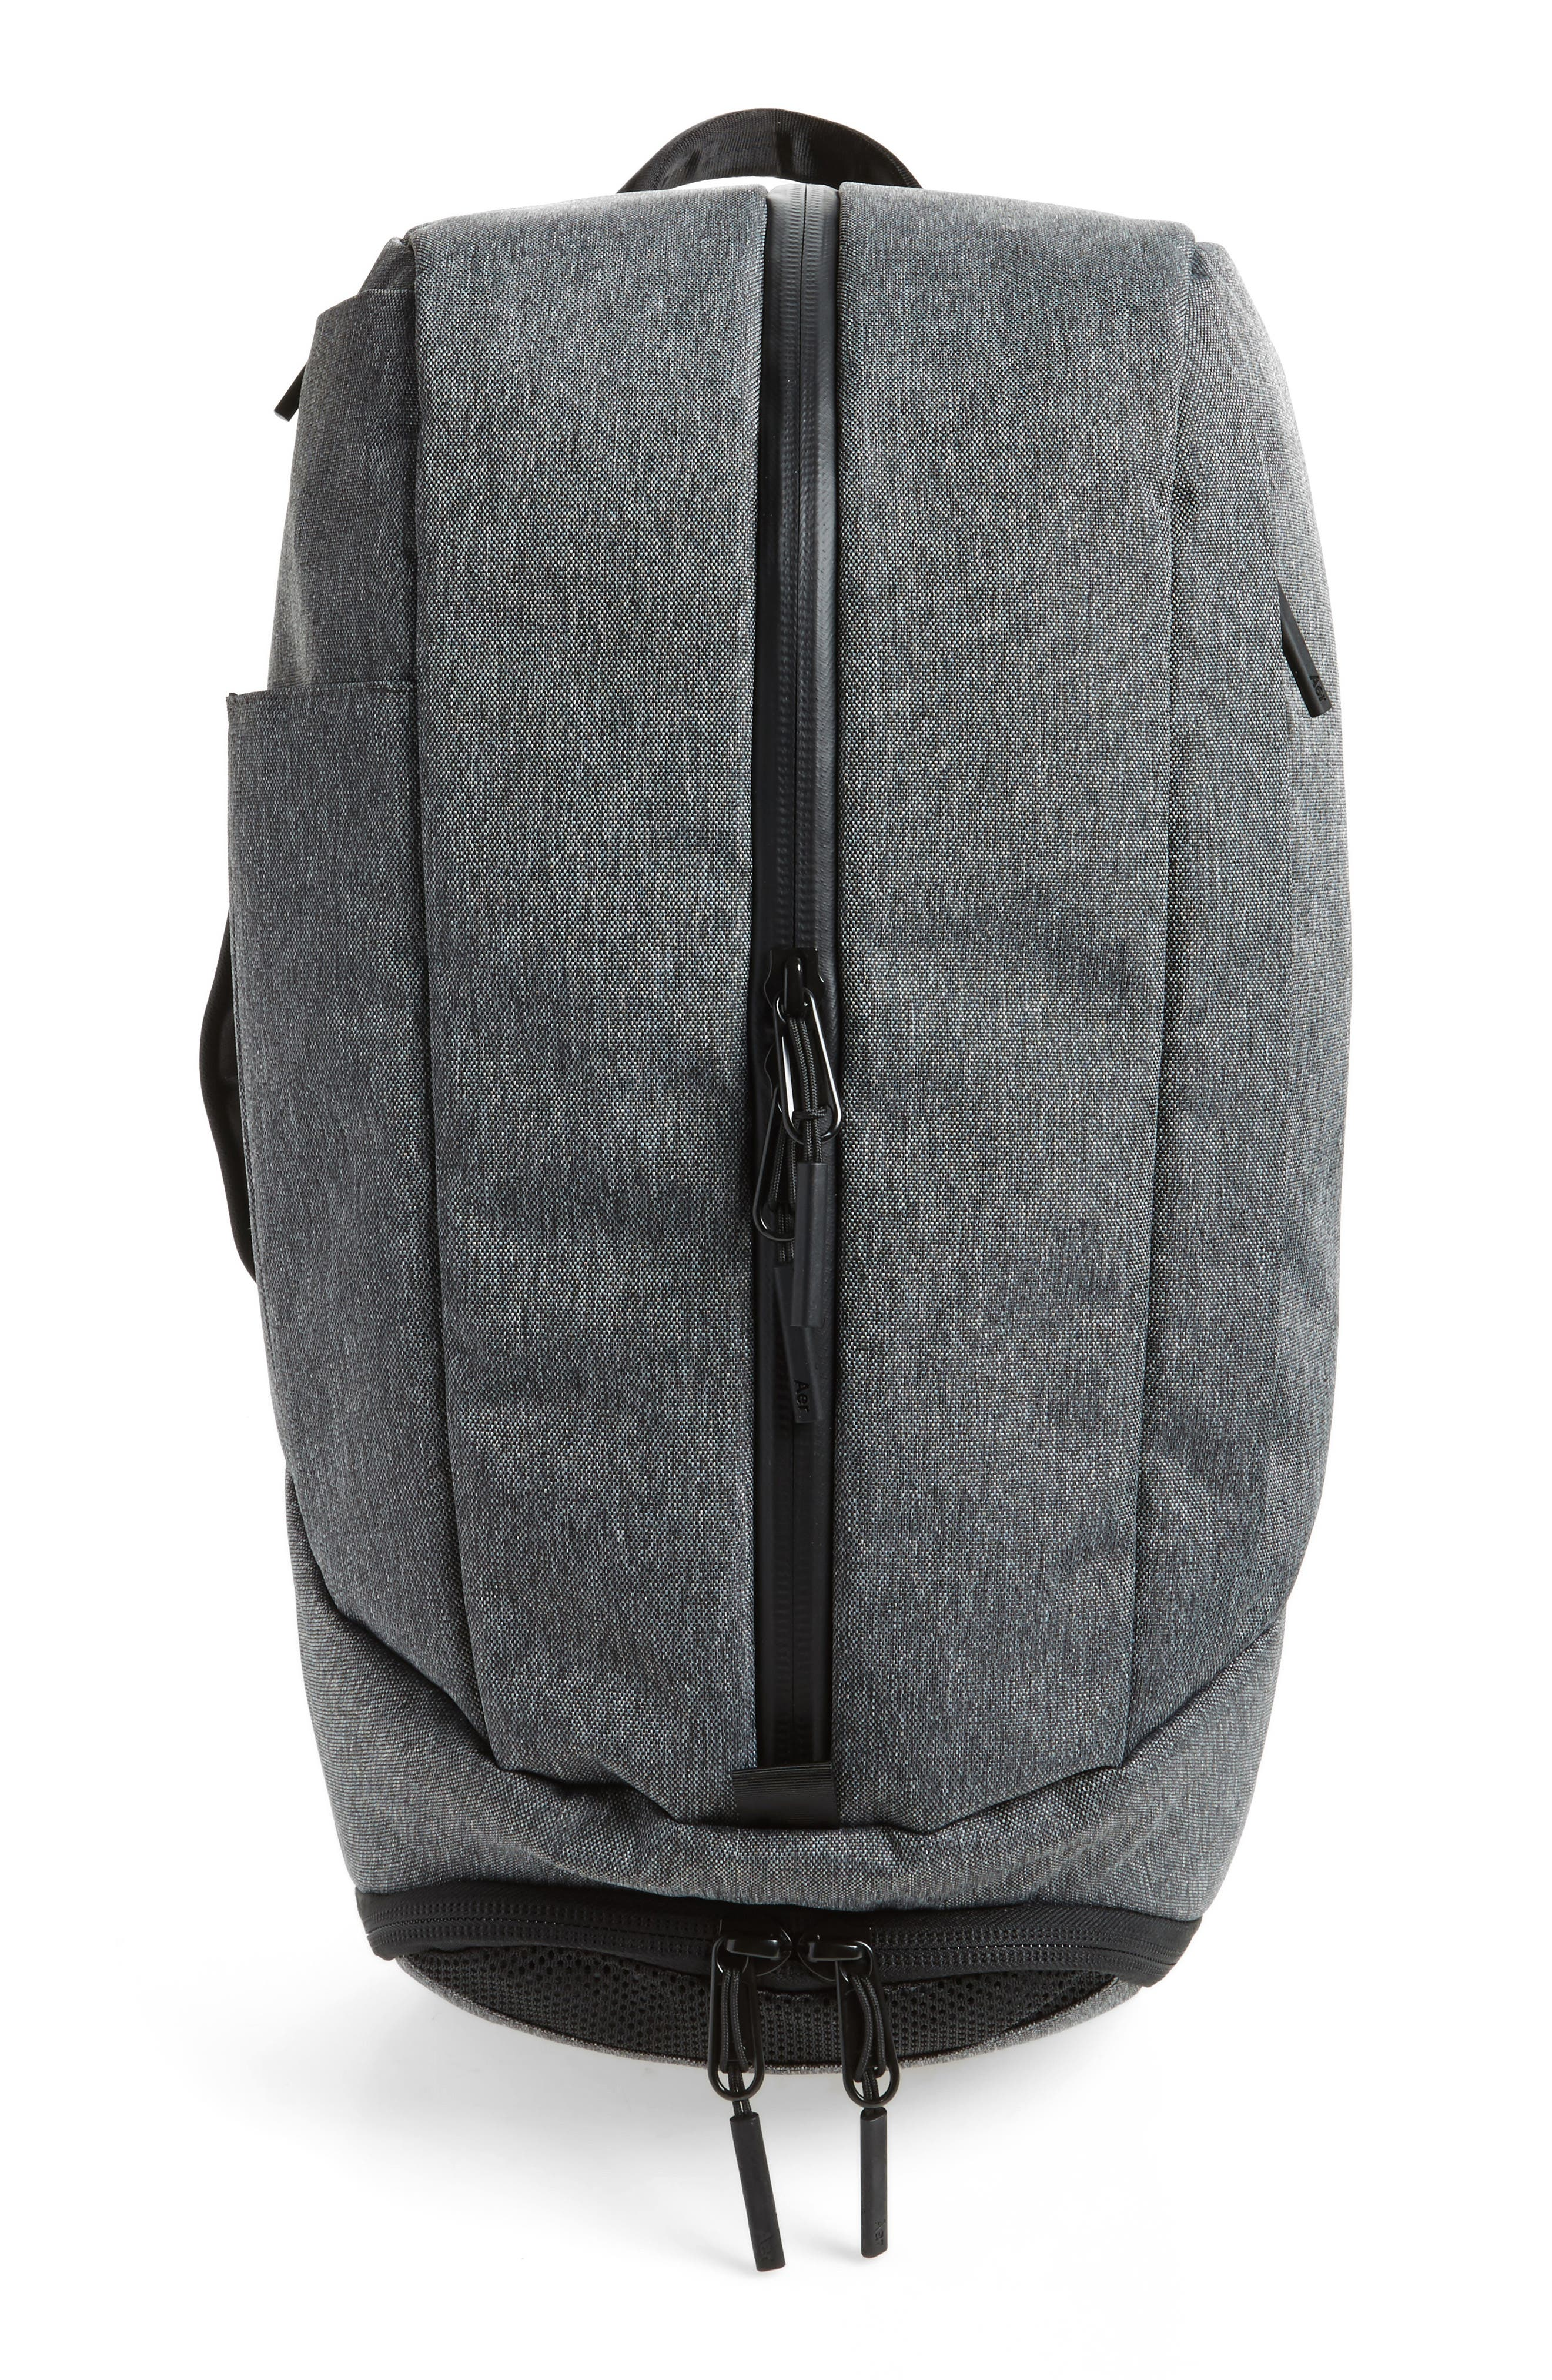 Aer Duffel Pack 2 Backpack/Duffel Bag